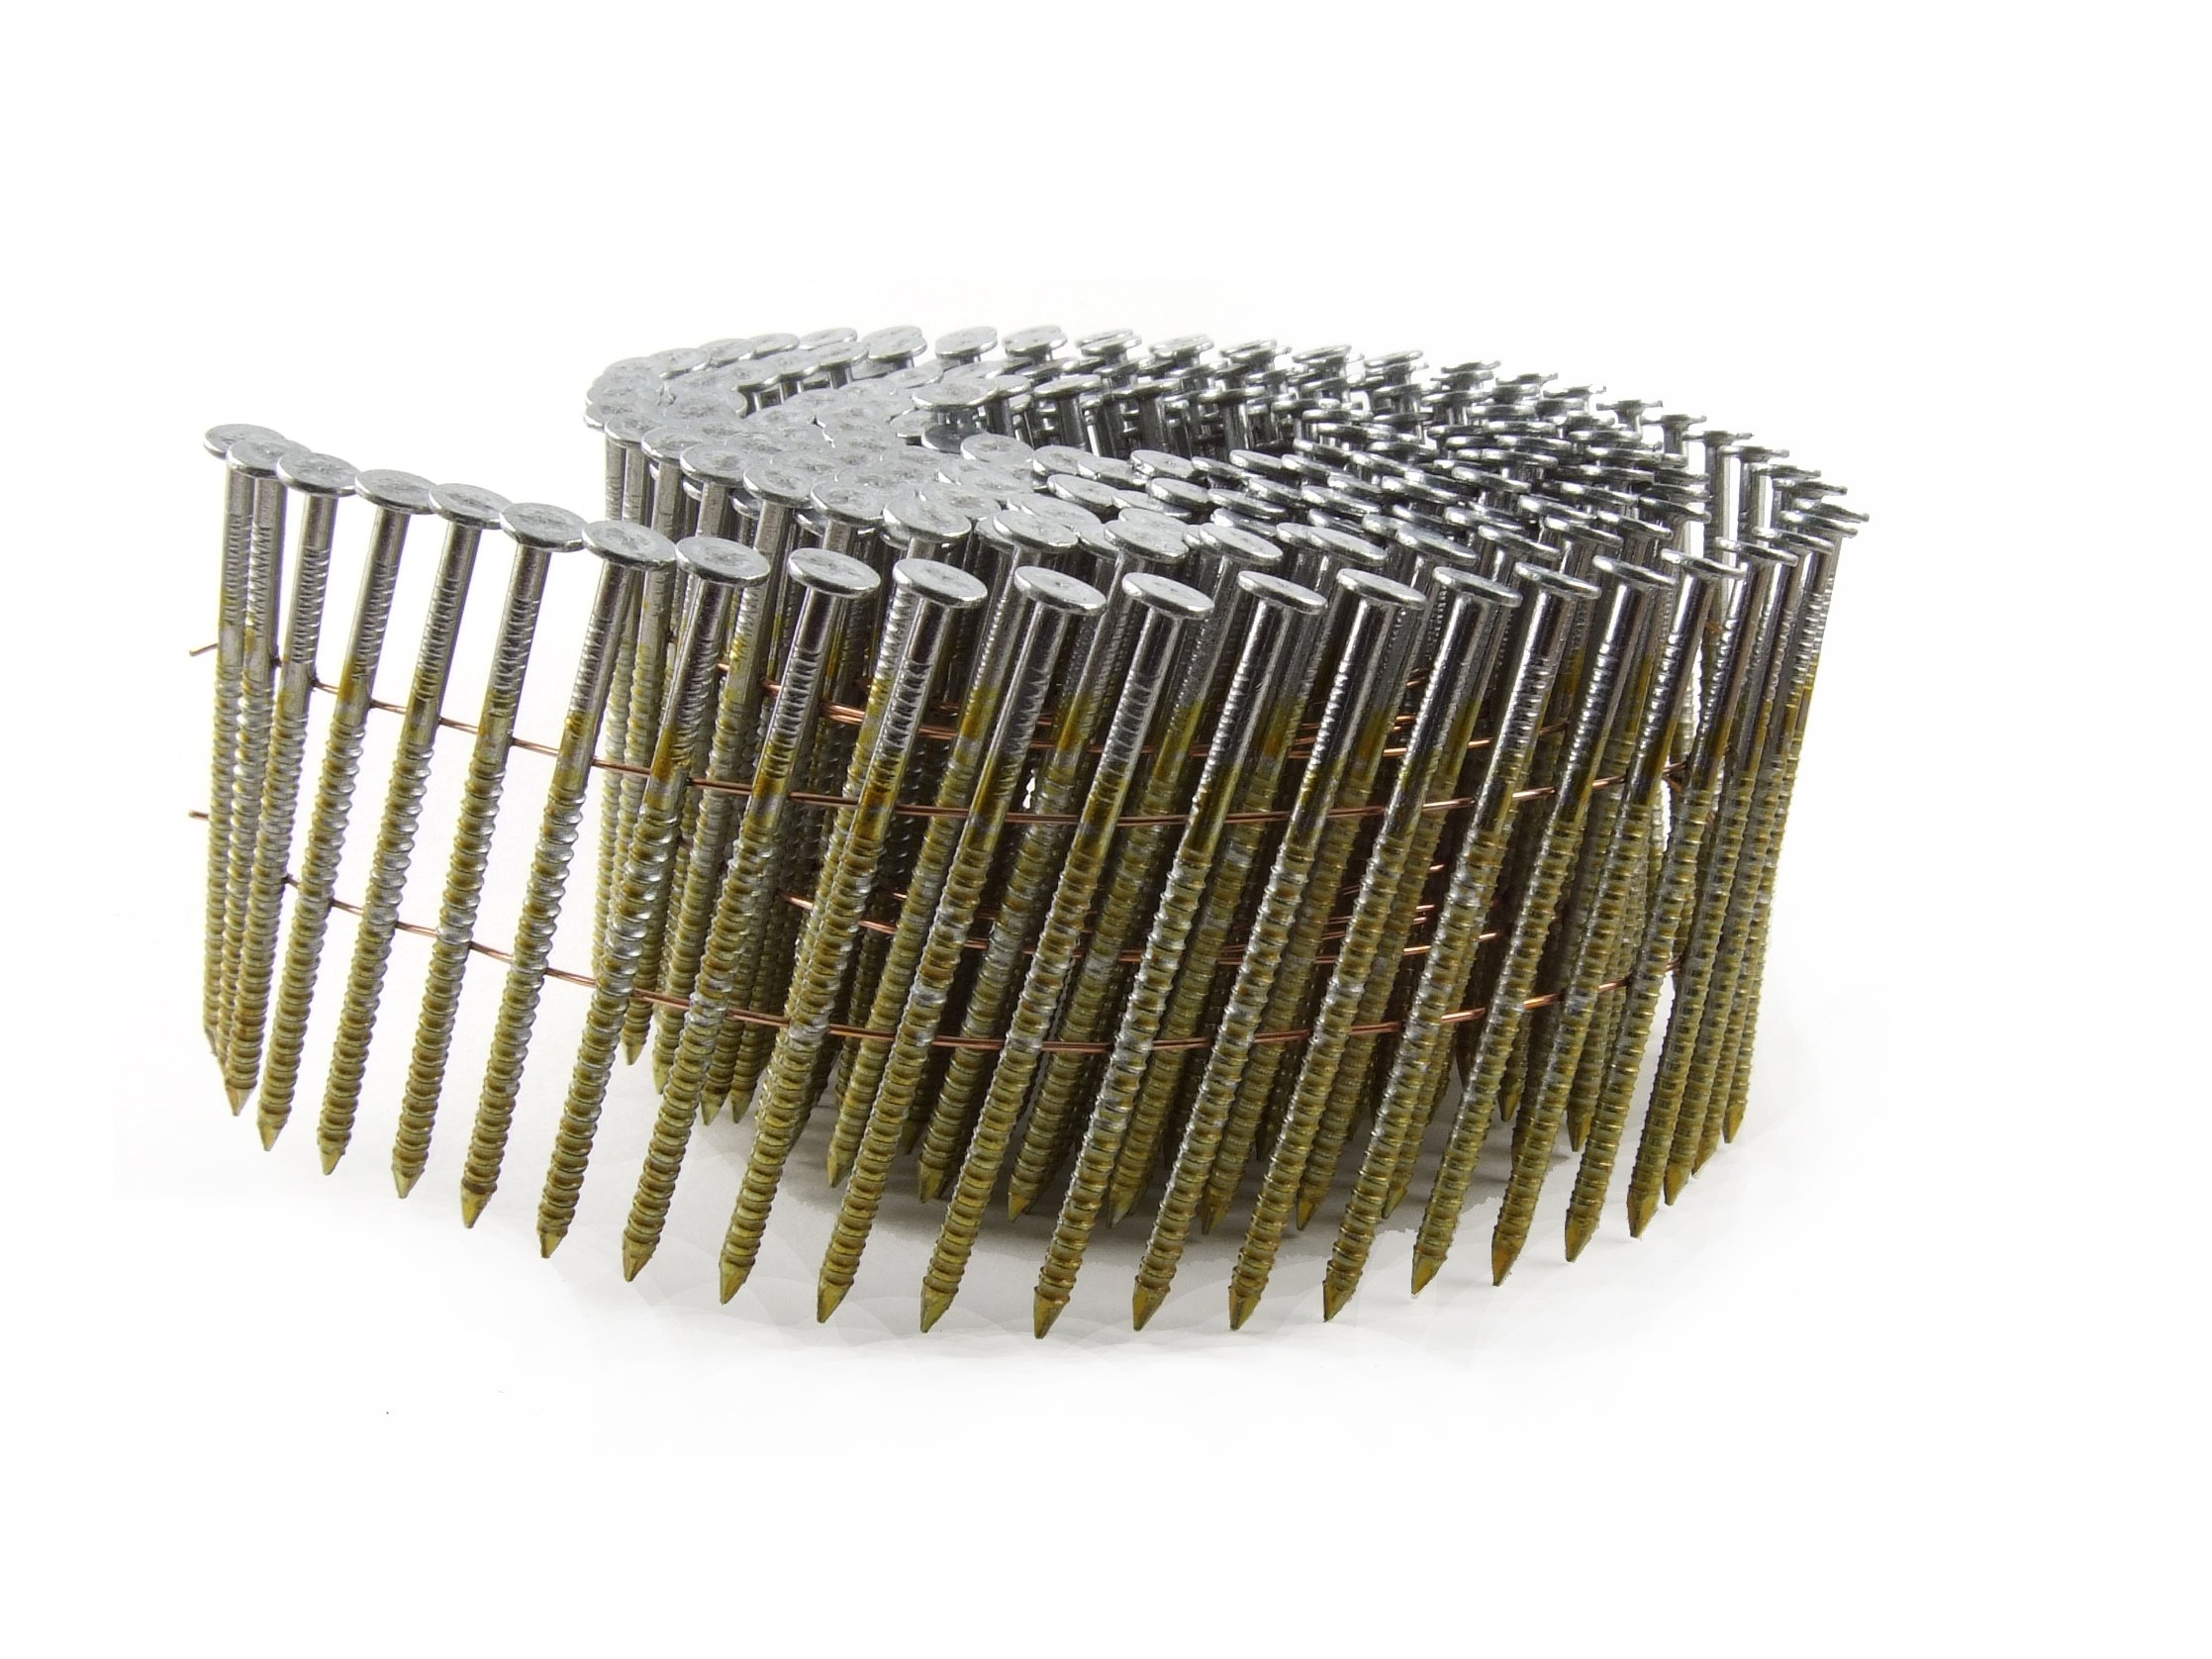 B&C Eagle 3X120HDRC Round Head 3-Inch x .120 x 15 Degree Hot Dip Galvanized Ring Shank Wire Collated Coil Framing Nails (2,500 per box)